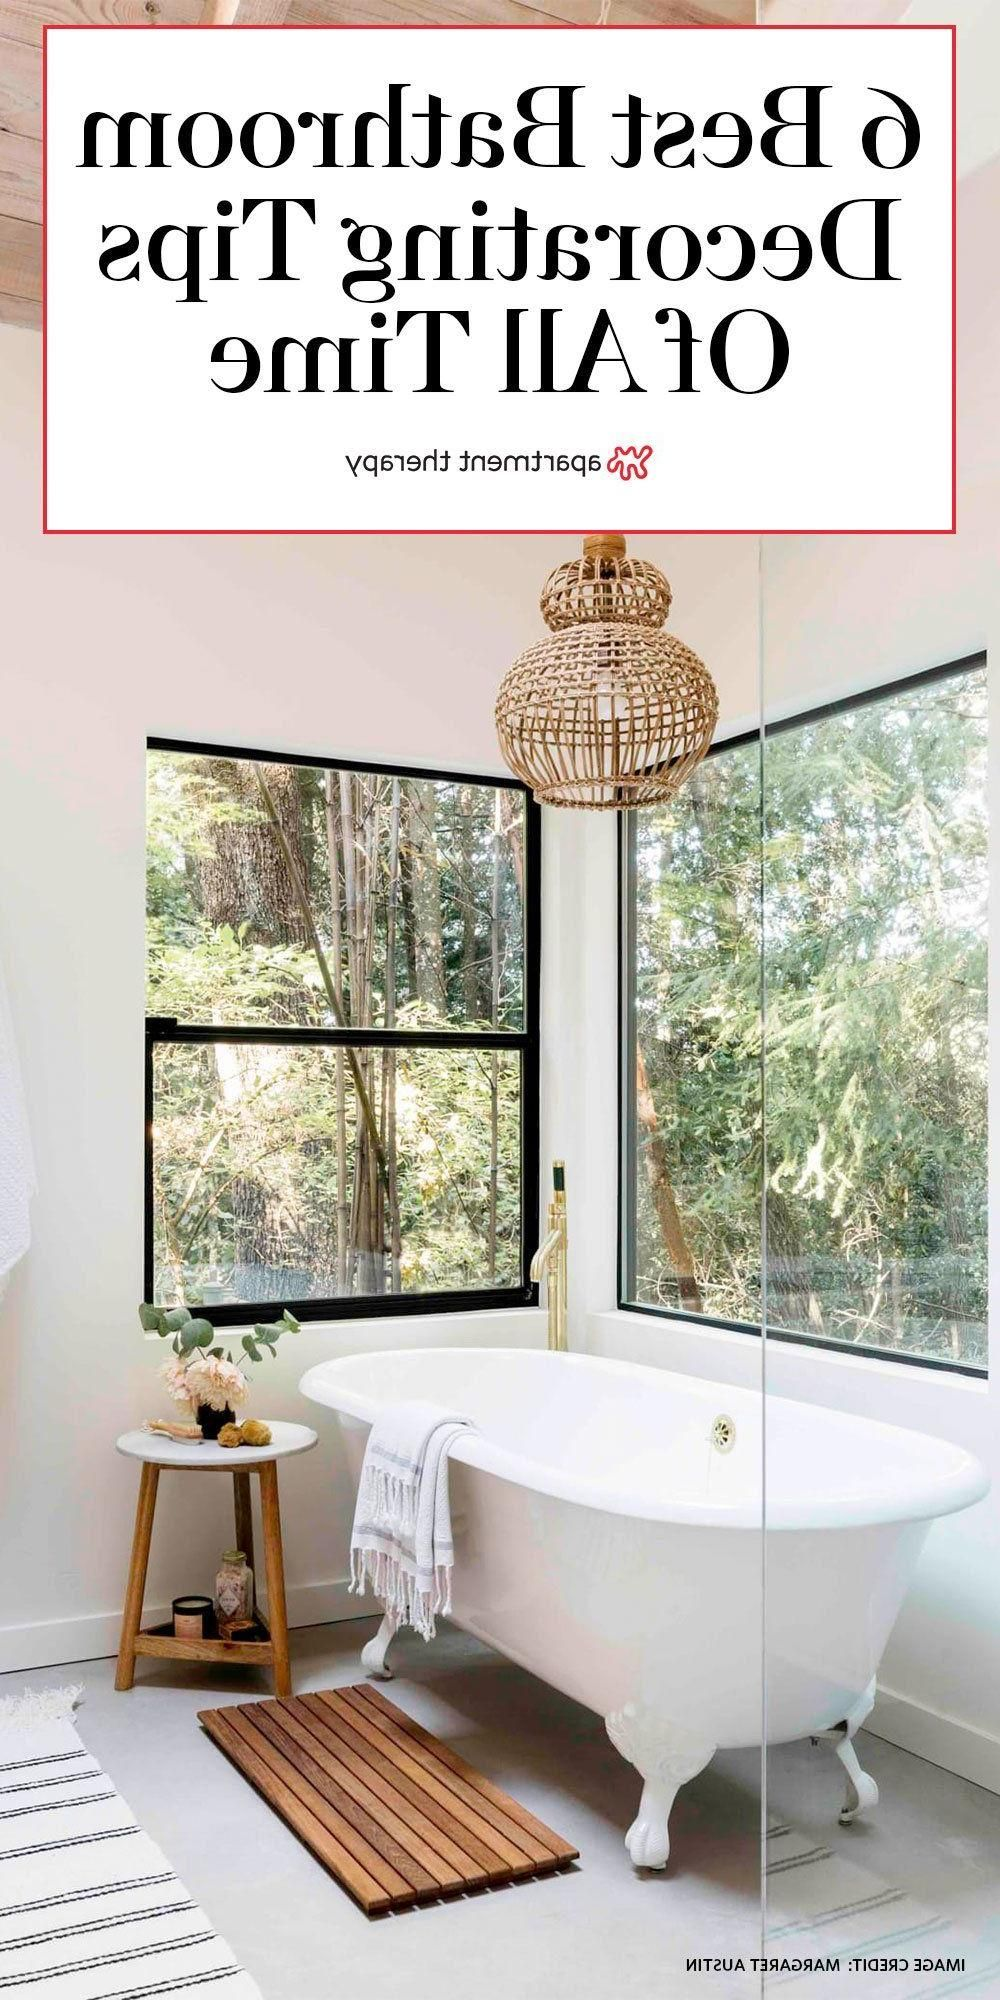 Photo of Cozy Home Interior These are the 6 best bathroom decorating tips according to Ap…